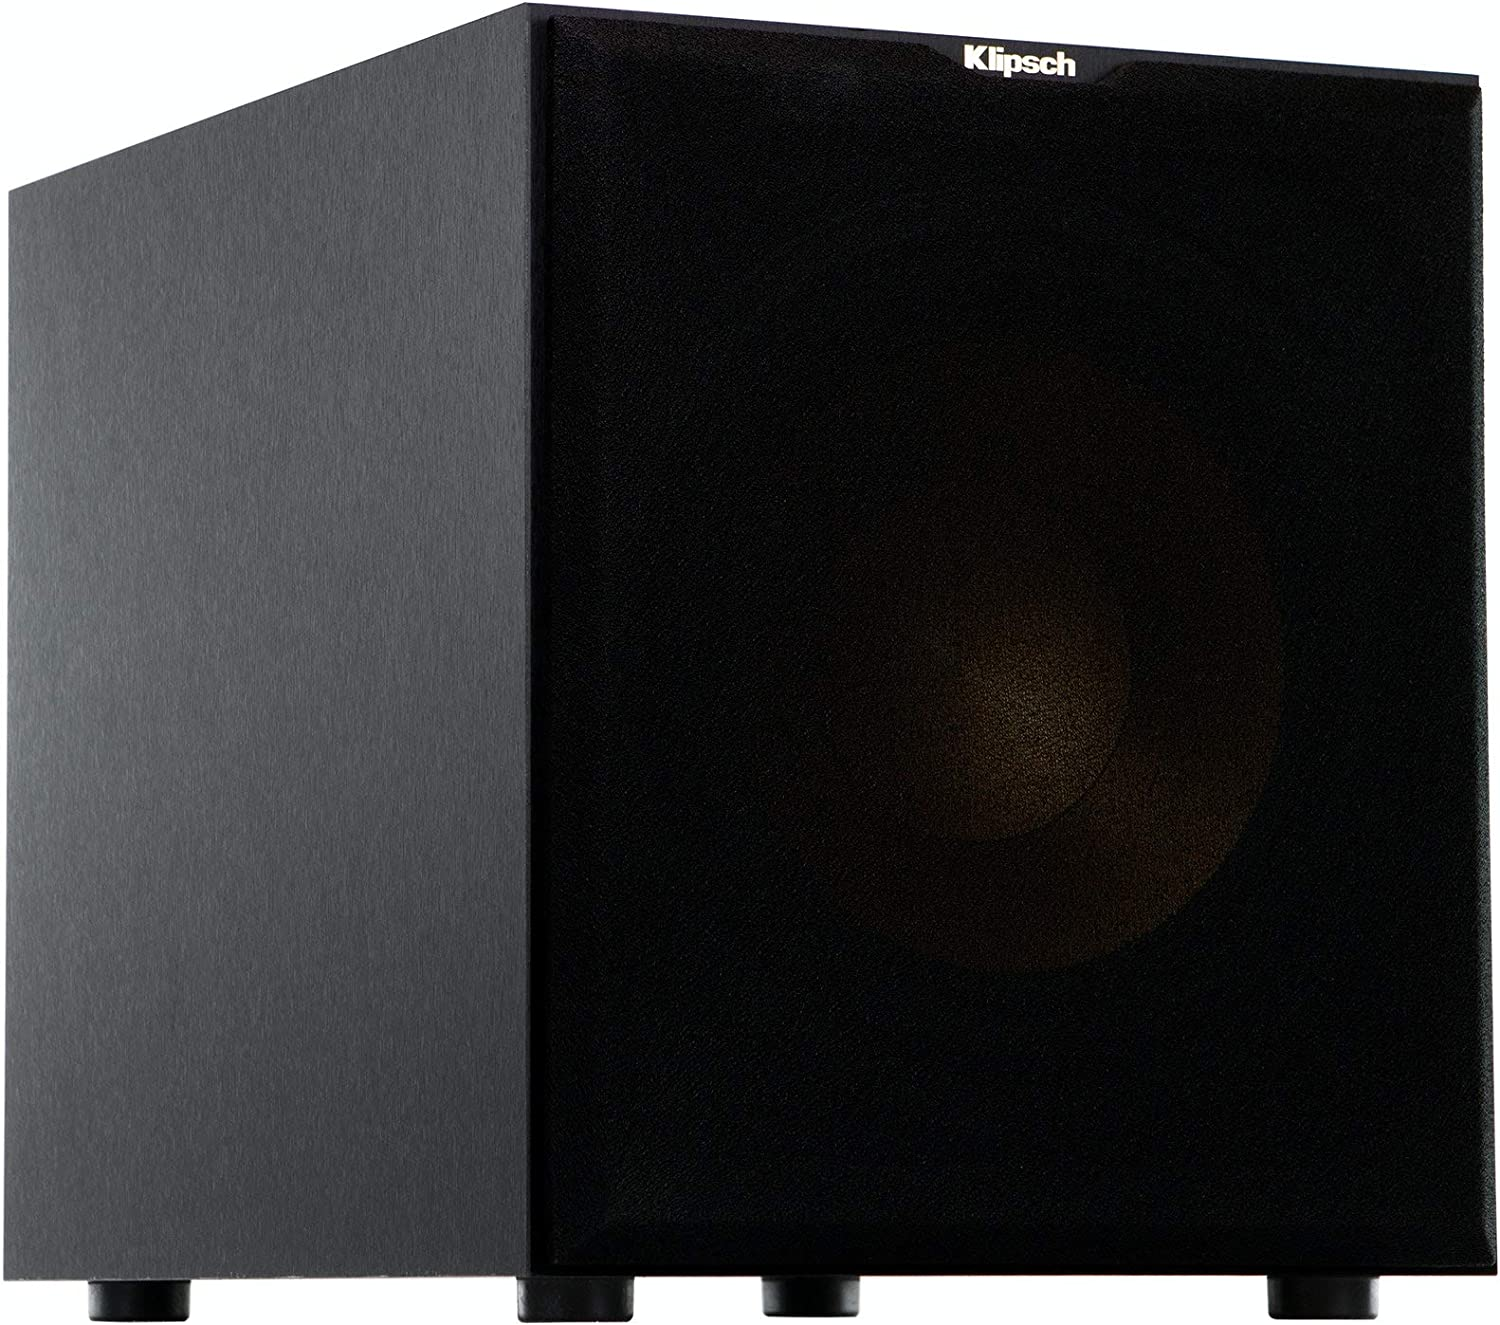 Buy Klipsch Reference 2X R-625FA Dolby Atmos Floor Standing Speaker Bundle  with R-12SW 12 400W Powered Subwoofer, R-52C Two-Way Center Channel, R-41M  Bookshelf Speakers (Pair), Black Online in Vietnam. B08WPPL38V